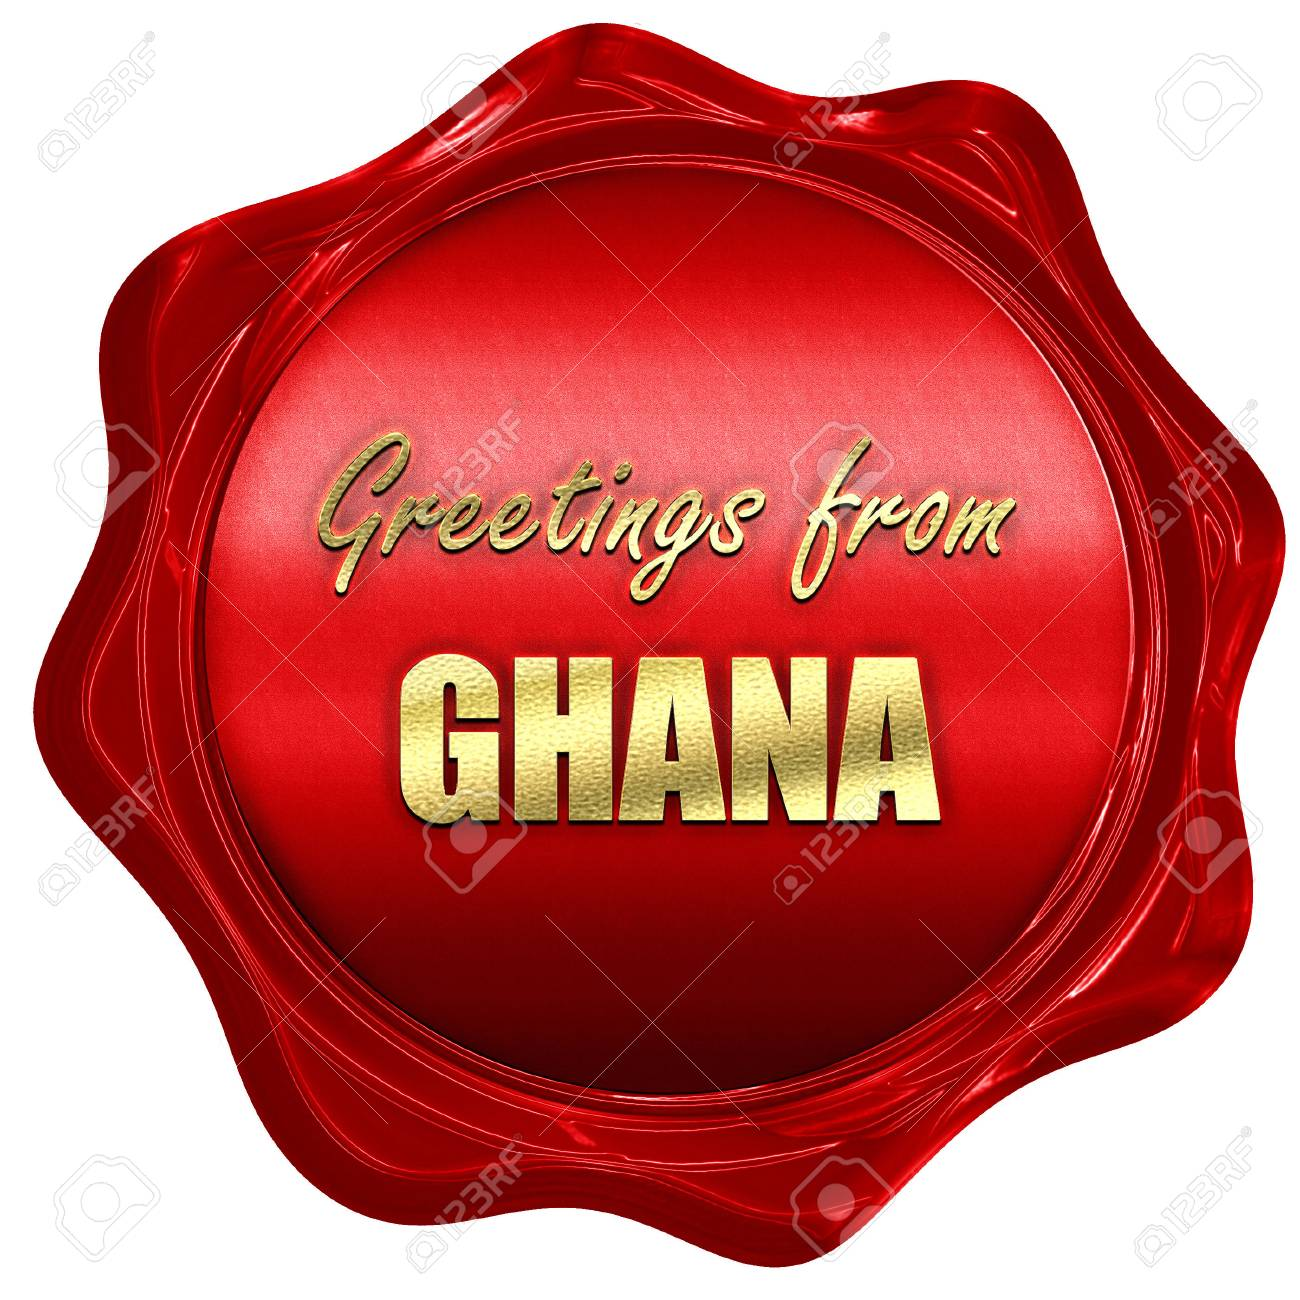 Greetings From Ghana Card With Some Soft Highlights 3d Rendering